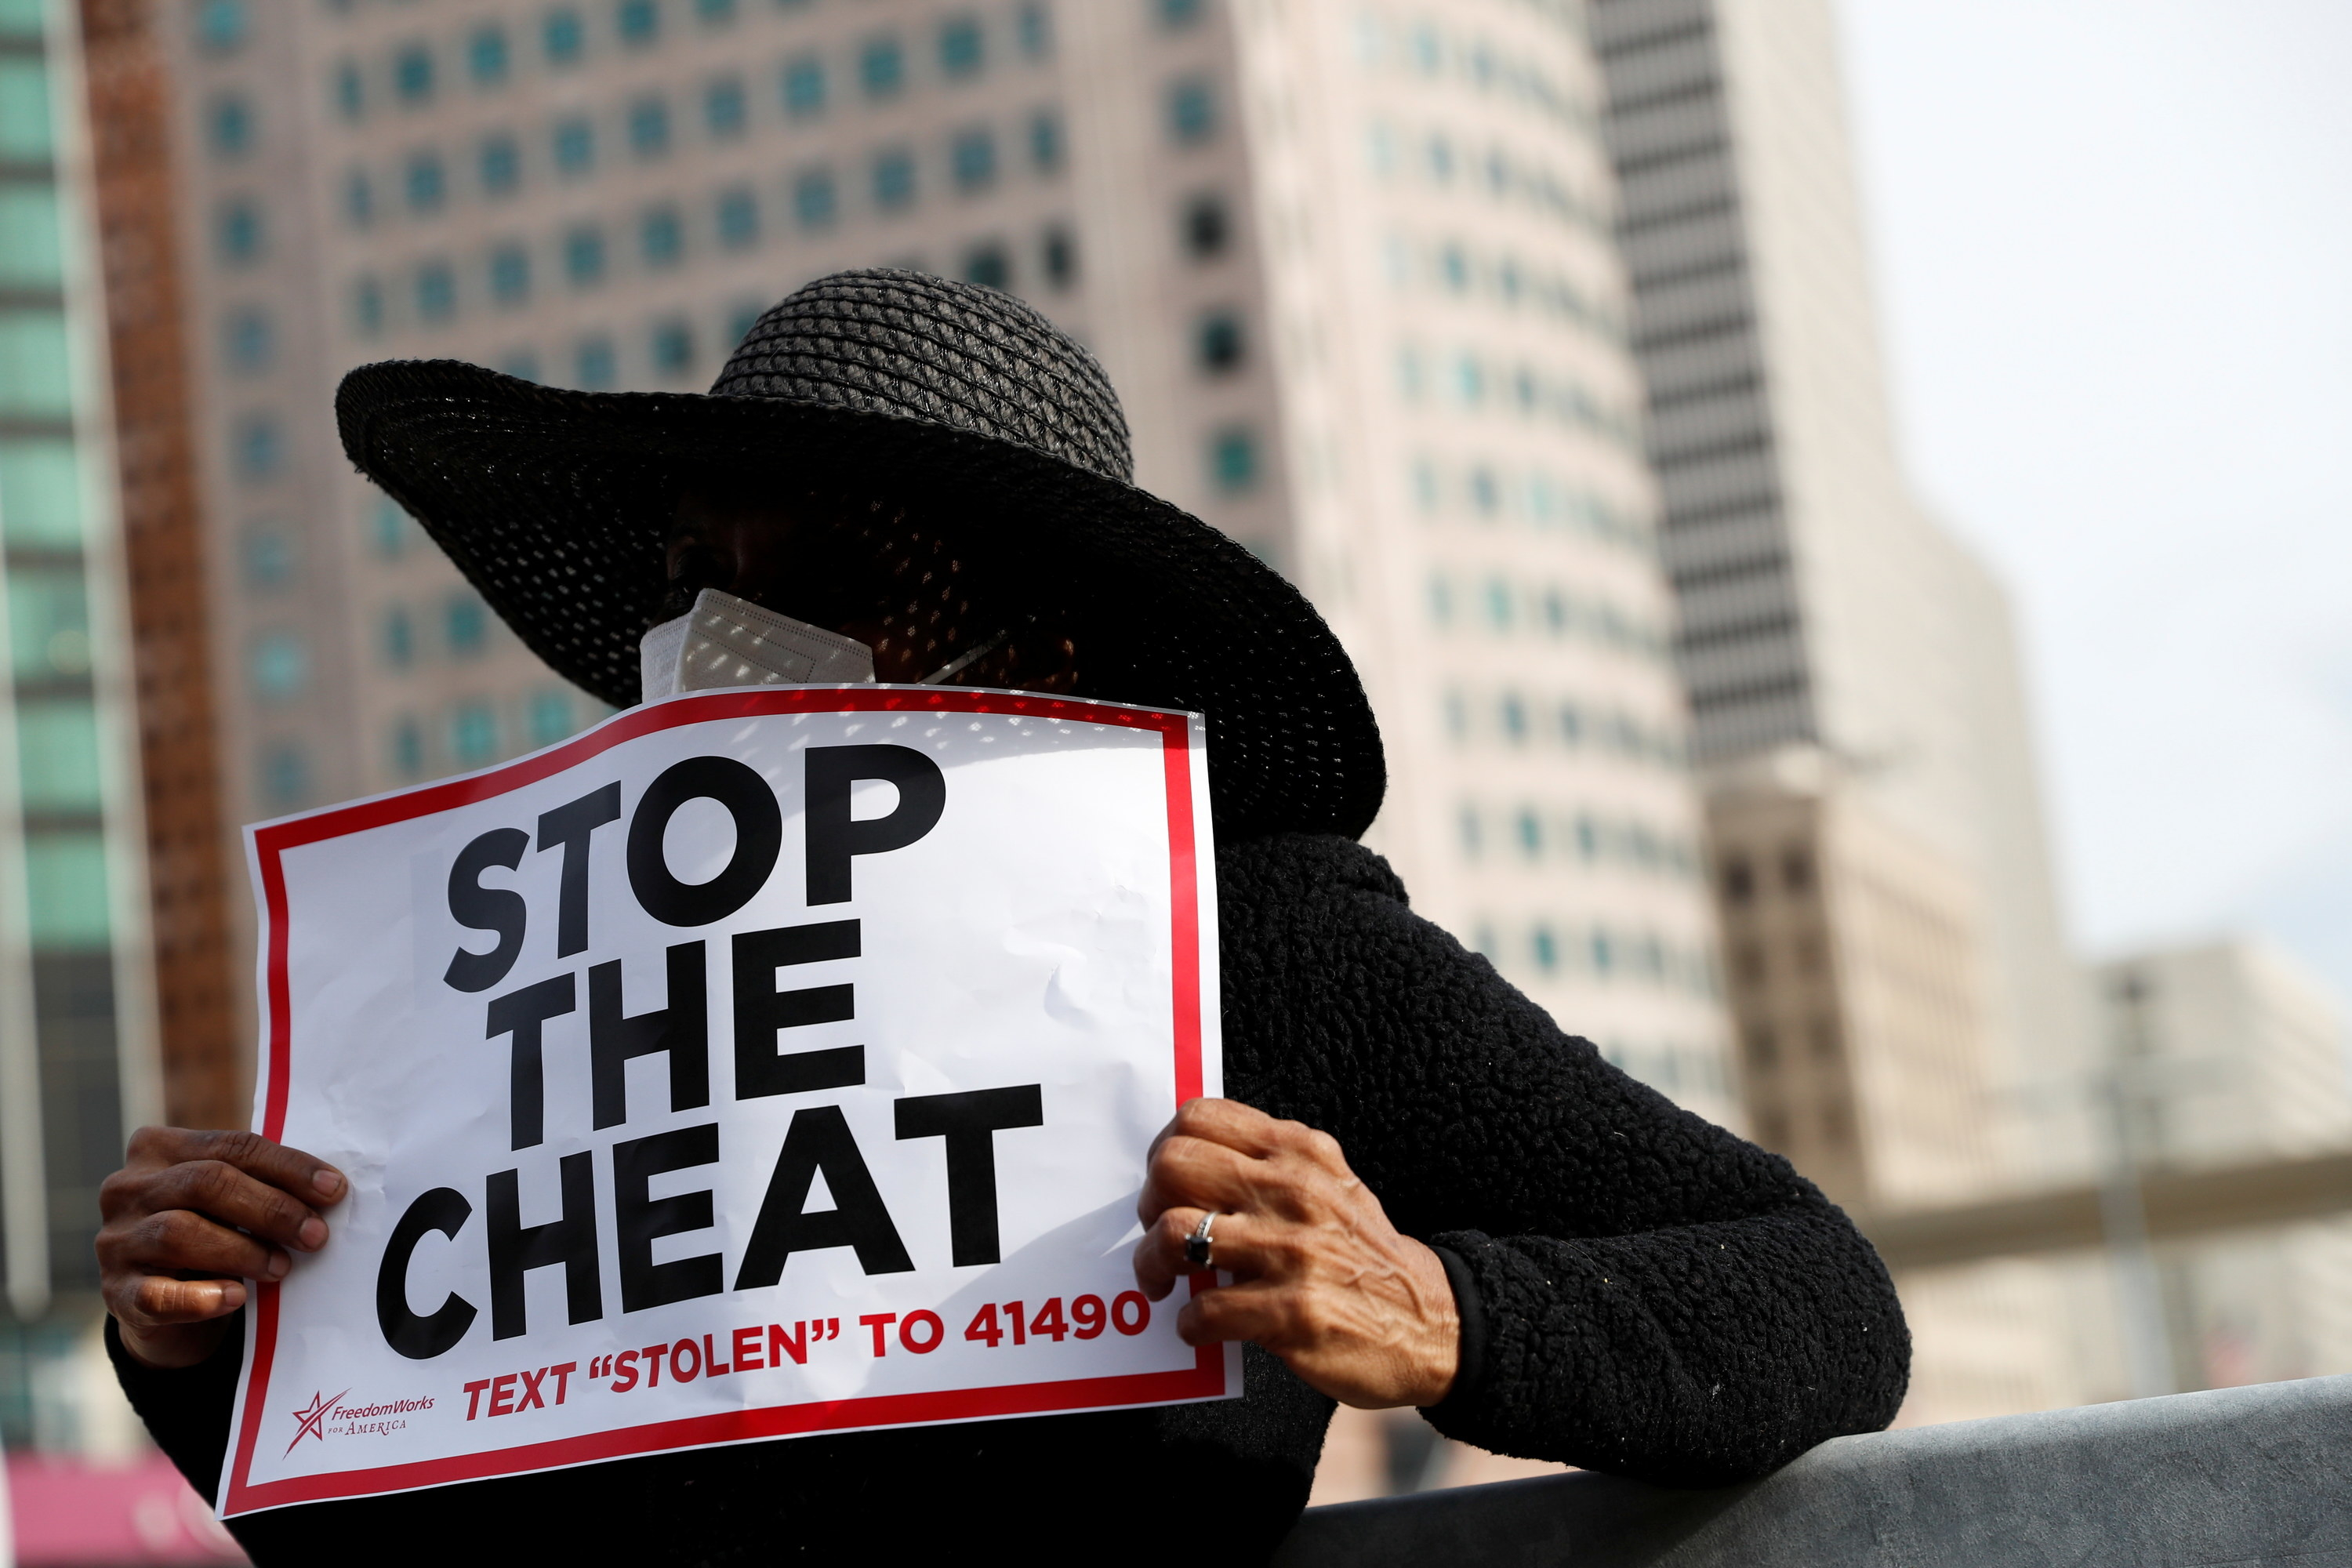 A person with a stop the cheat sign